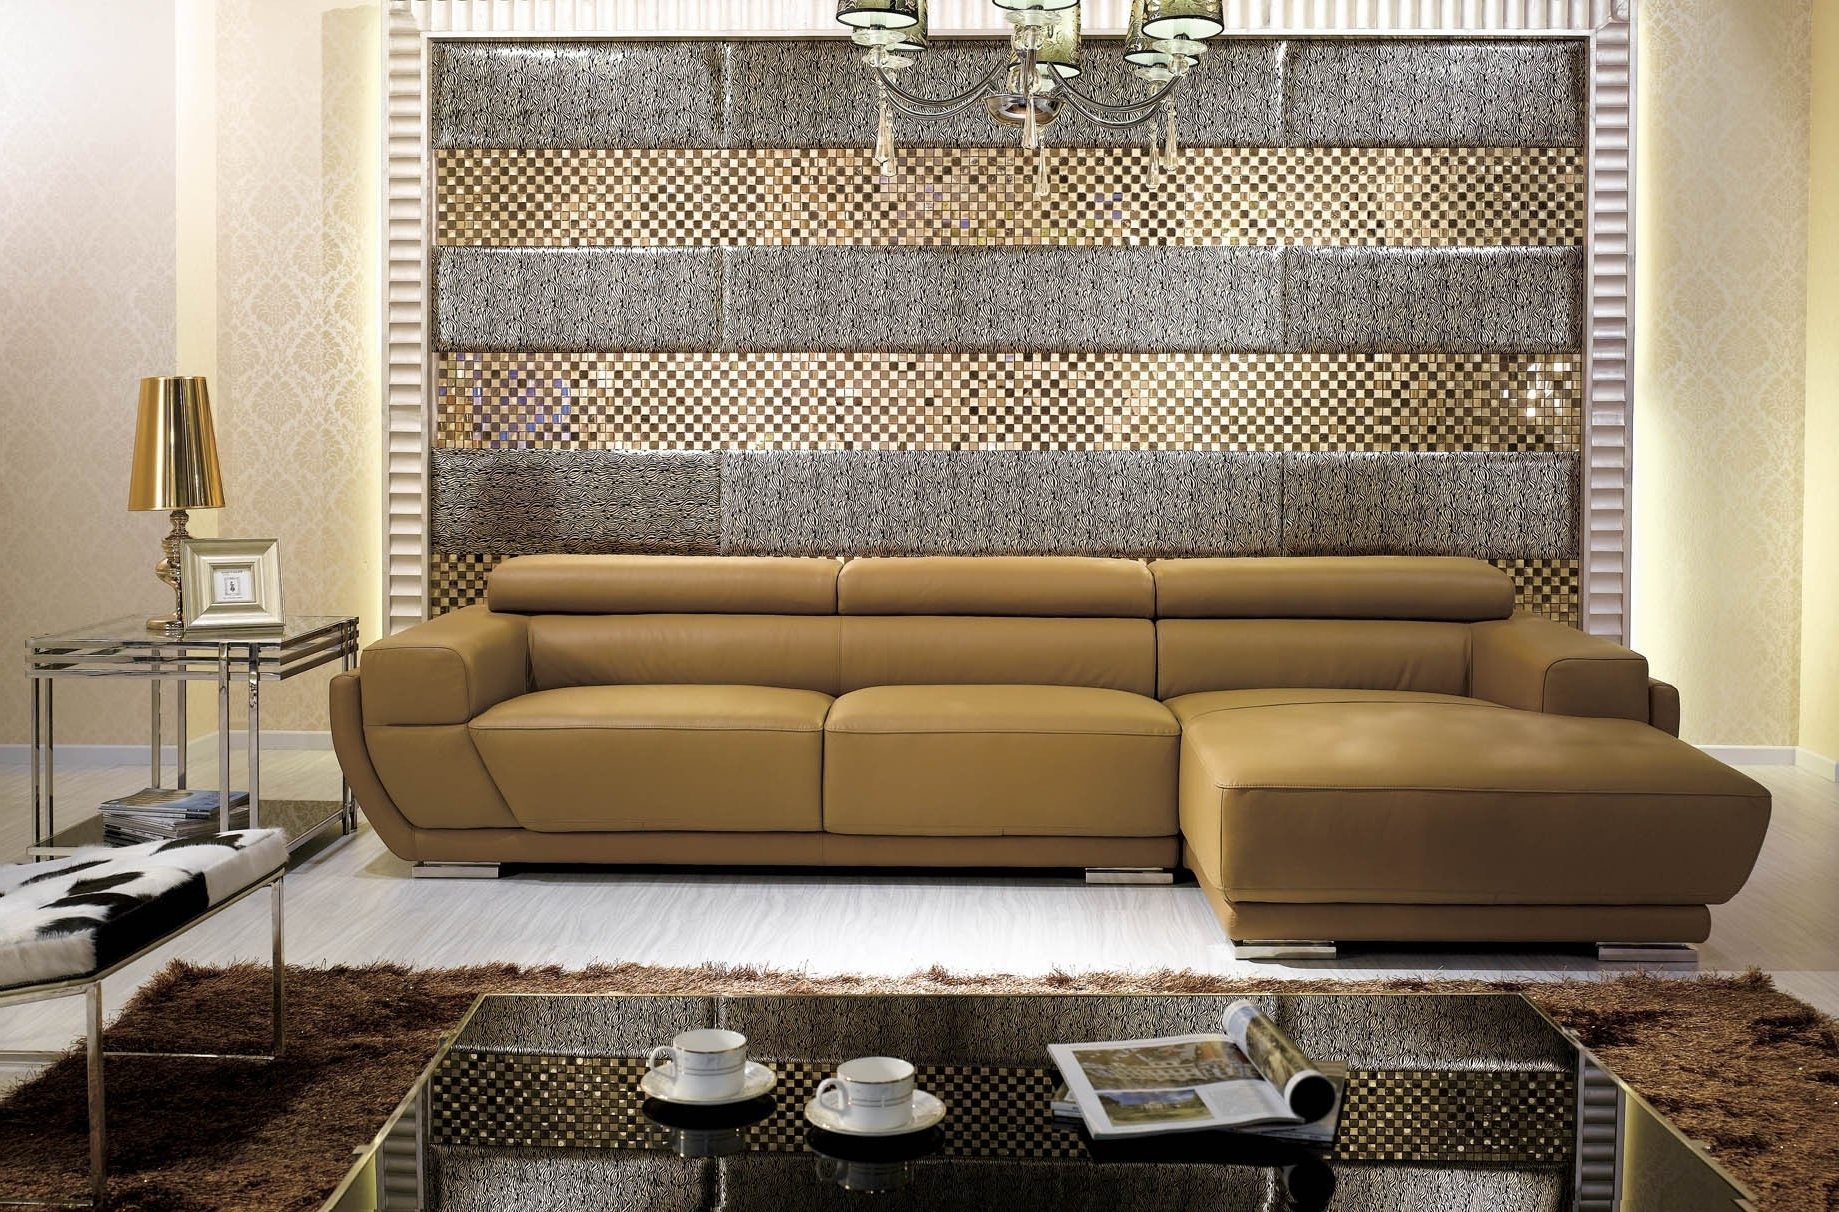 K8300 Modern Camel Italian Leather Sectional Sofa With Best And Newest Camel Colored Sectional Sofas (View 9 of 15)